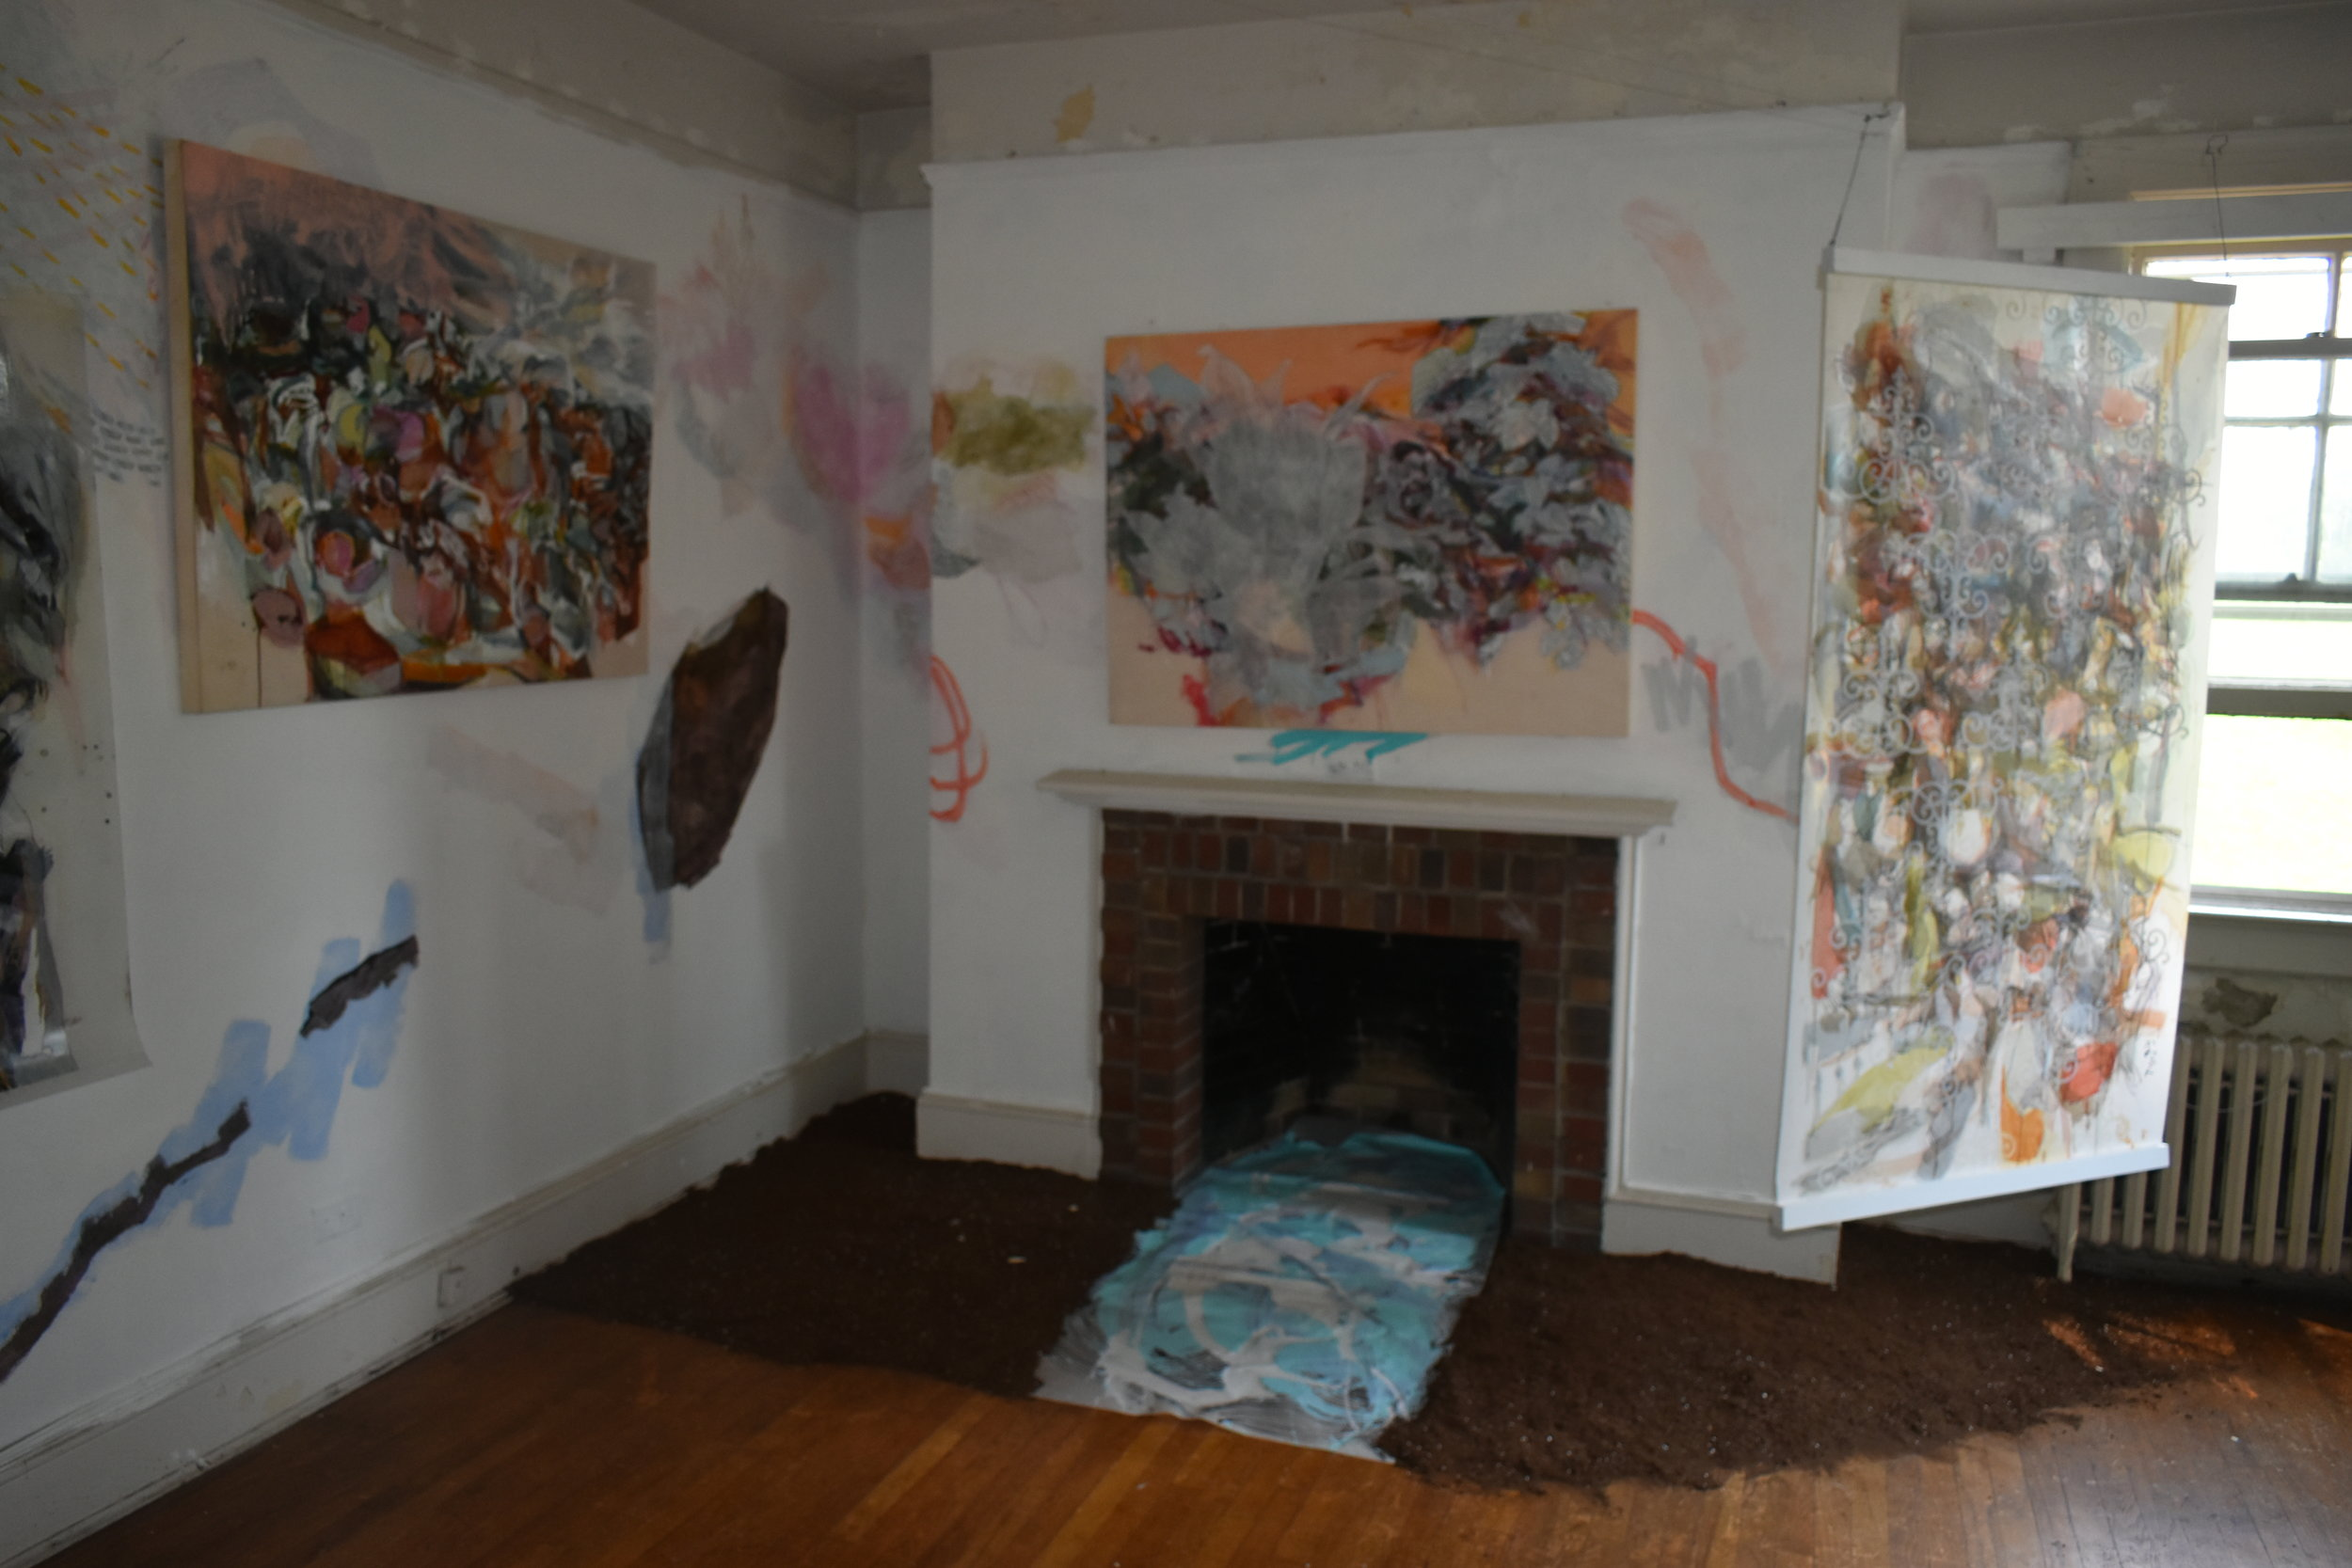 Installation scene on North and East walls with Murals and (water and soil elements) pieces on floor